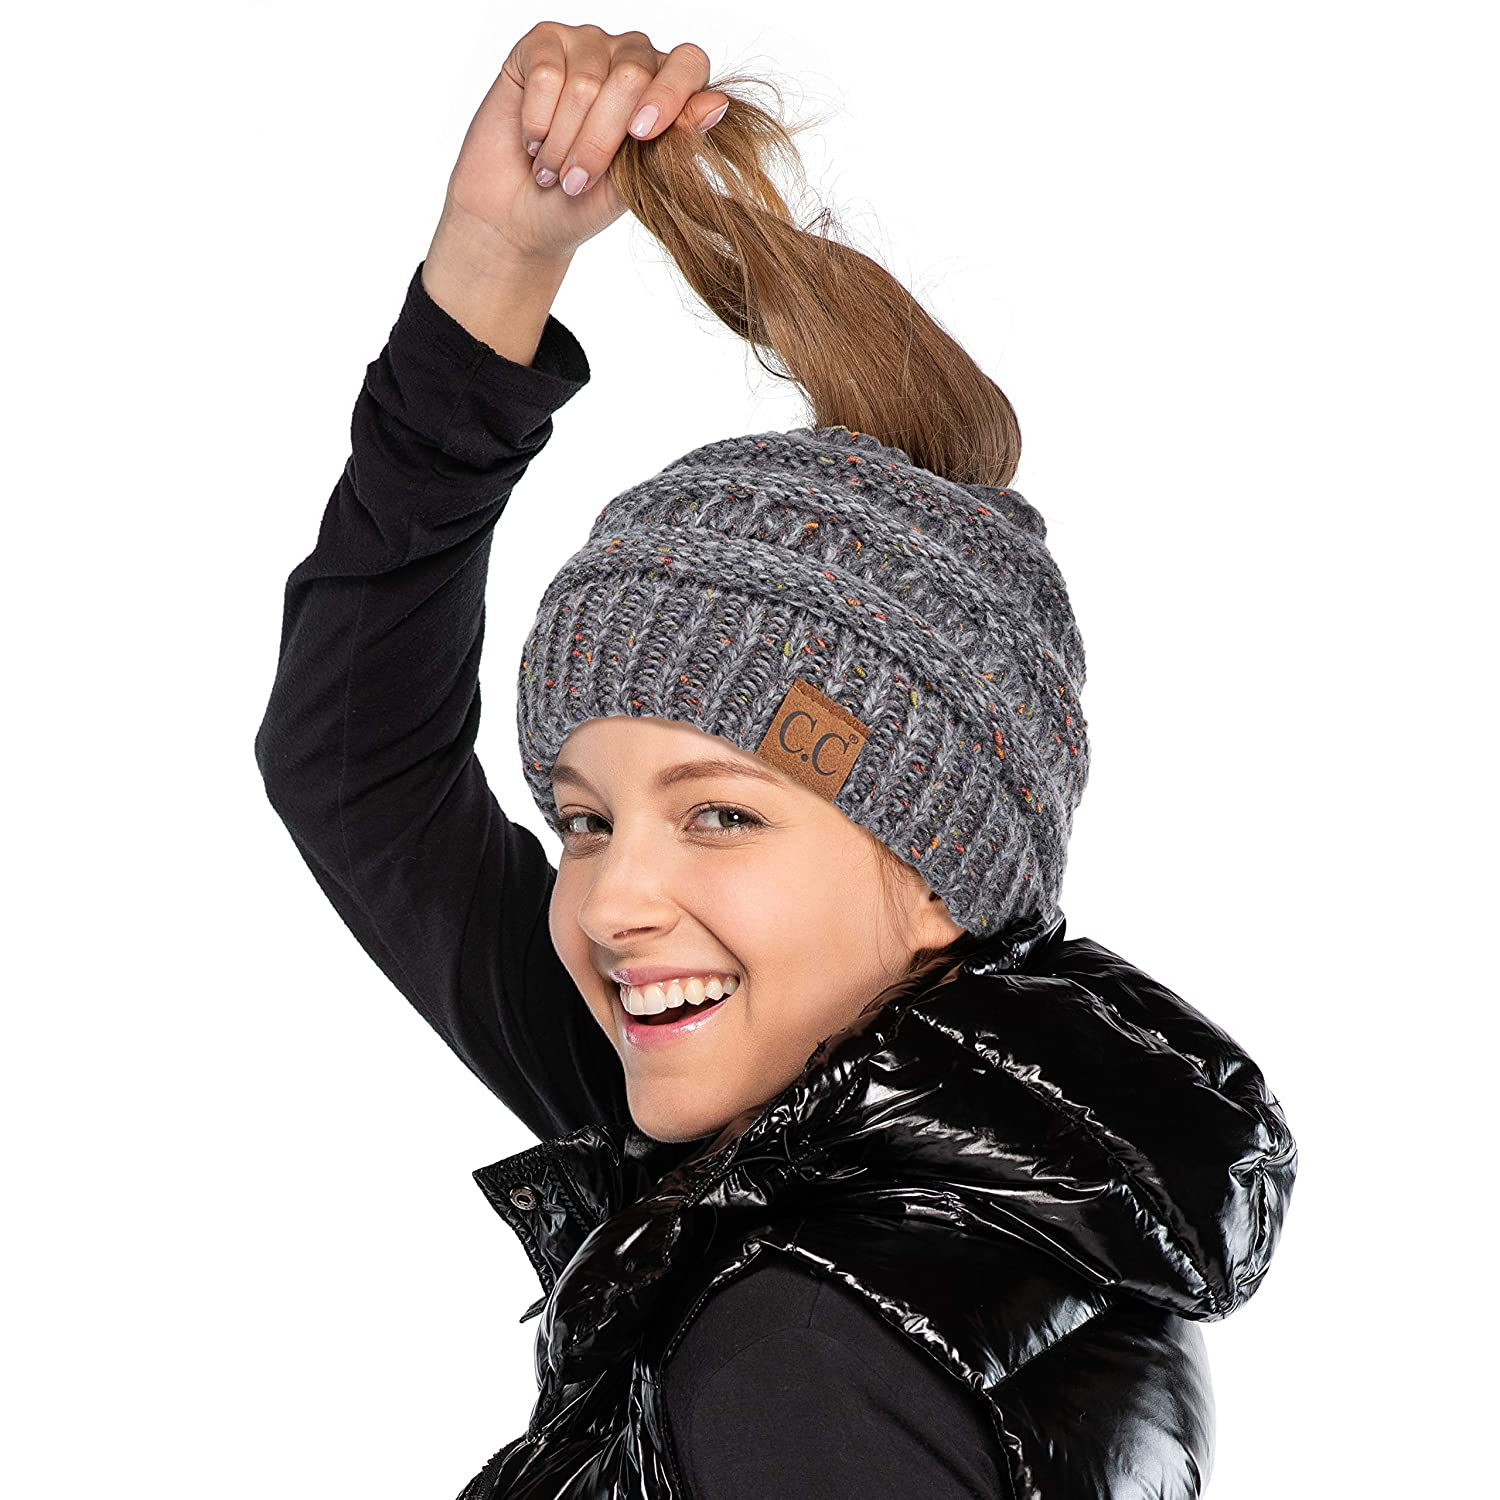 C.C Hatsandscarf Exclusives Ribbed Confetti Knit Messy Bun Beanie Tail Hat (Dk. Mel Grey Ombre)